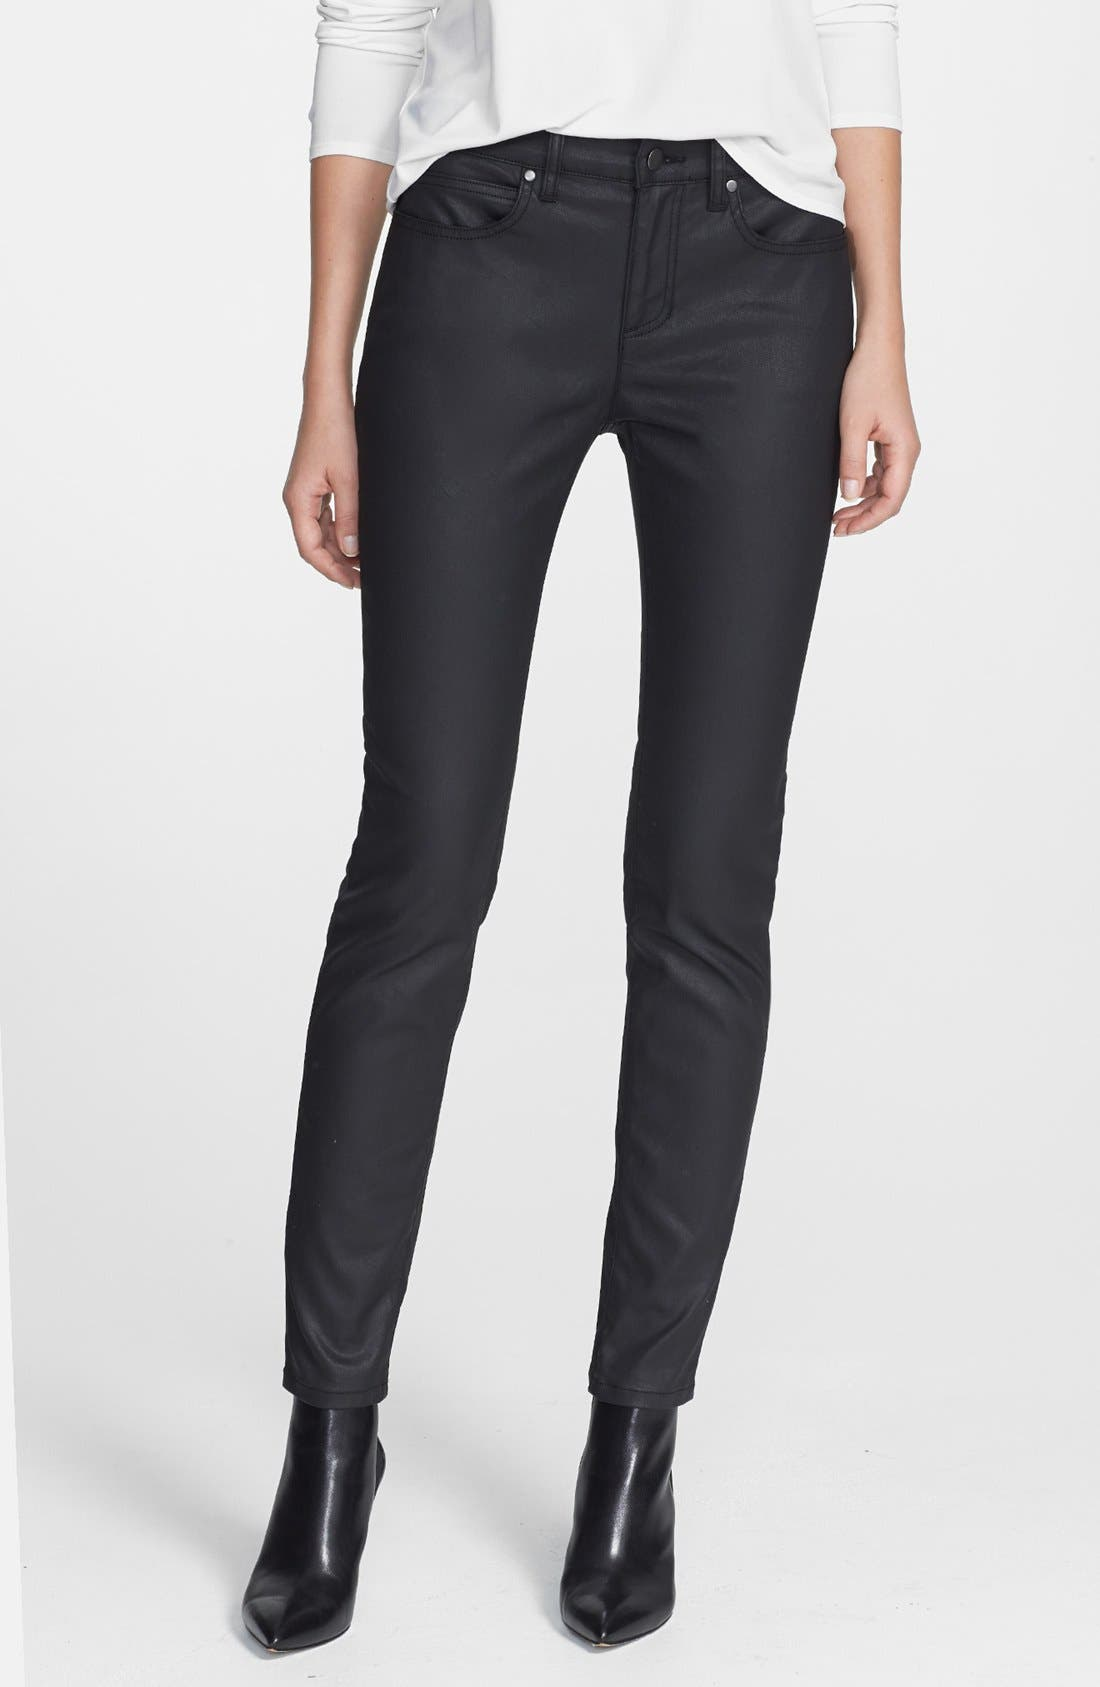 Alternate Image 1 Selected - Eileen Fisher Ankle Skinny Jeans (Black) (Petite)